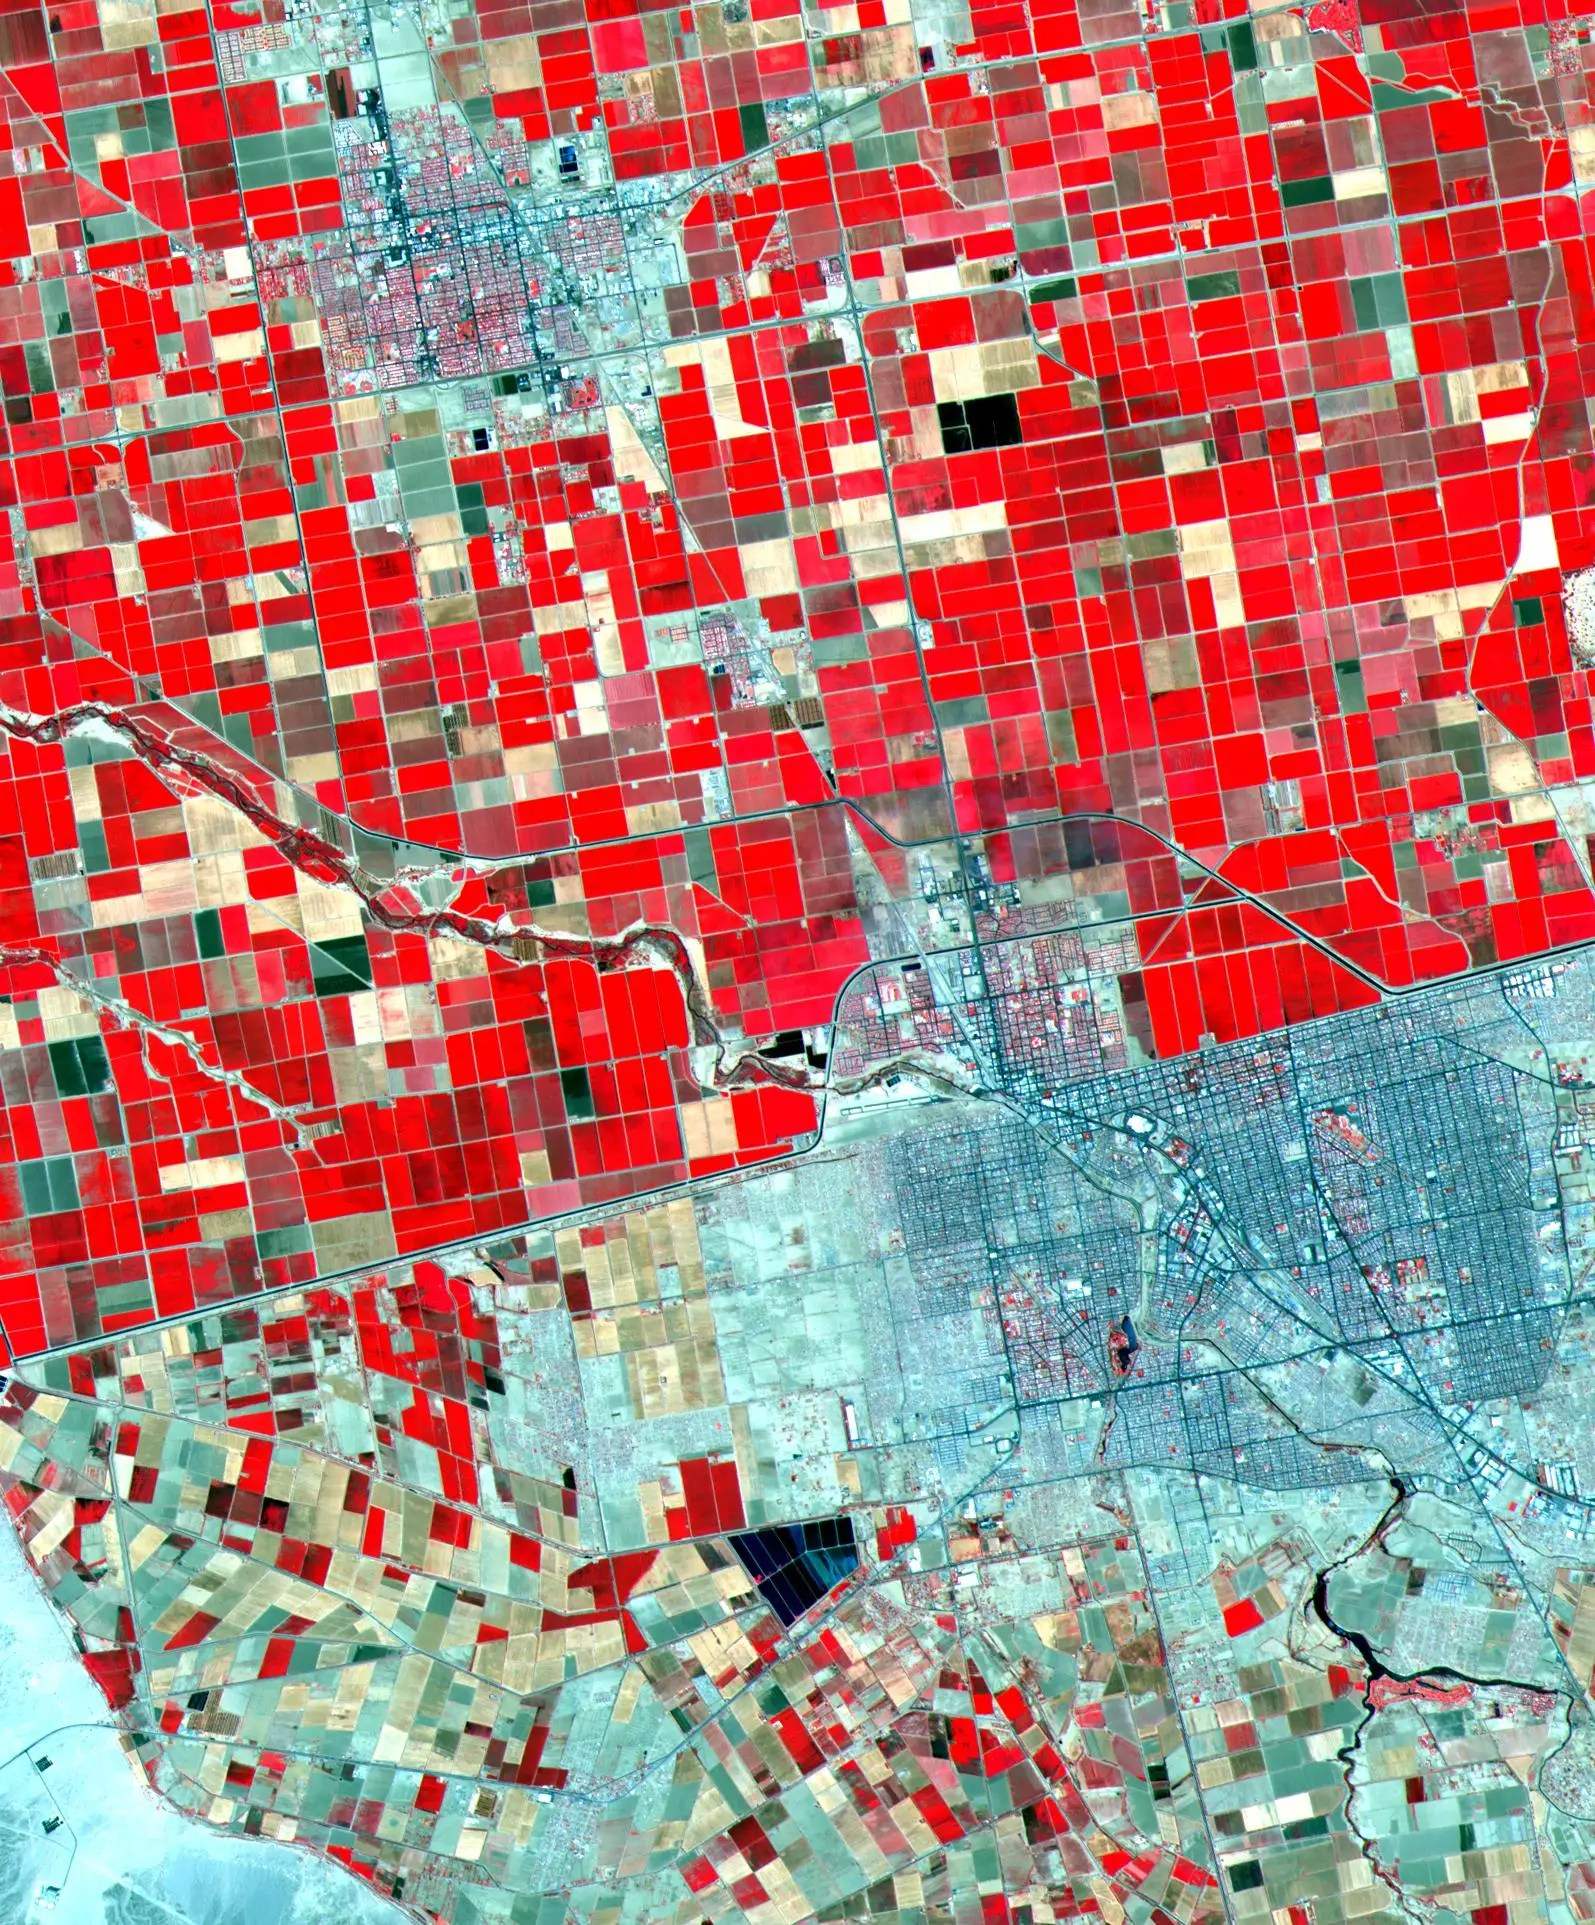 From space, the US-Mexico border is starkly defined by the landscape. Farms are colored in red, so Southern California (top half) stands out.